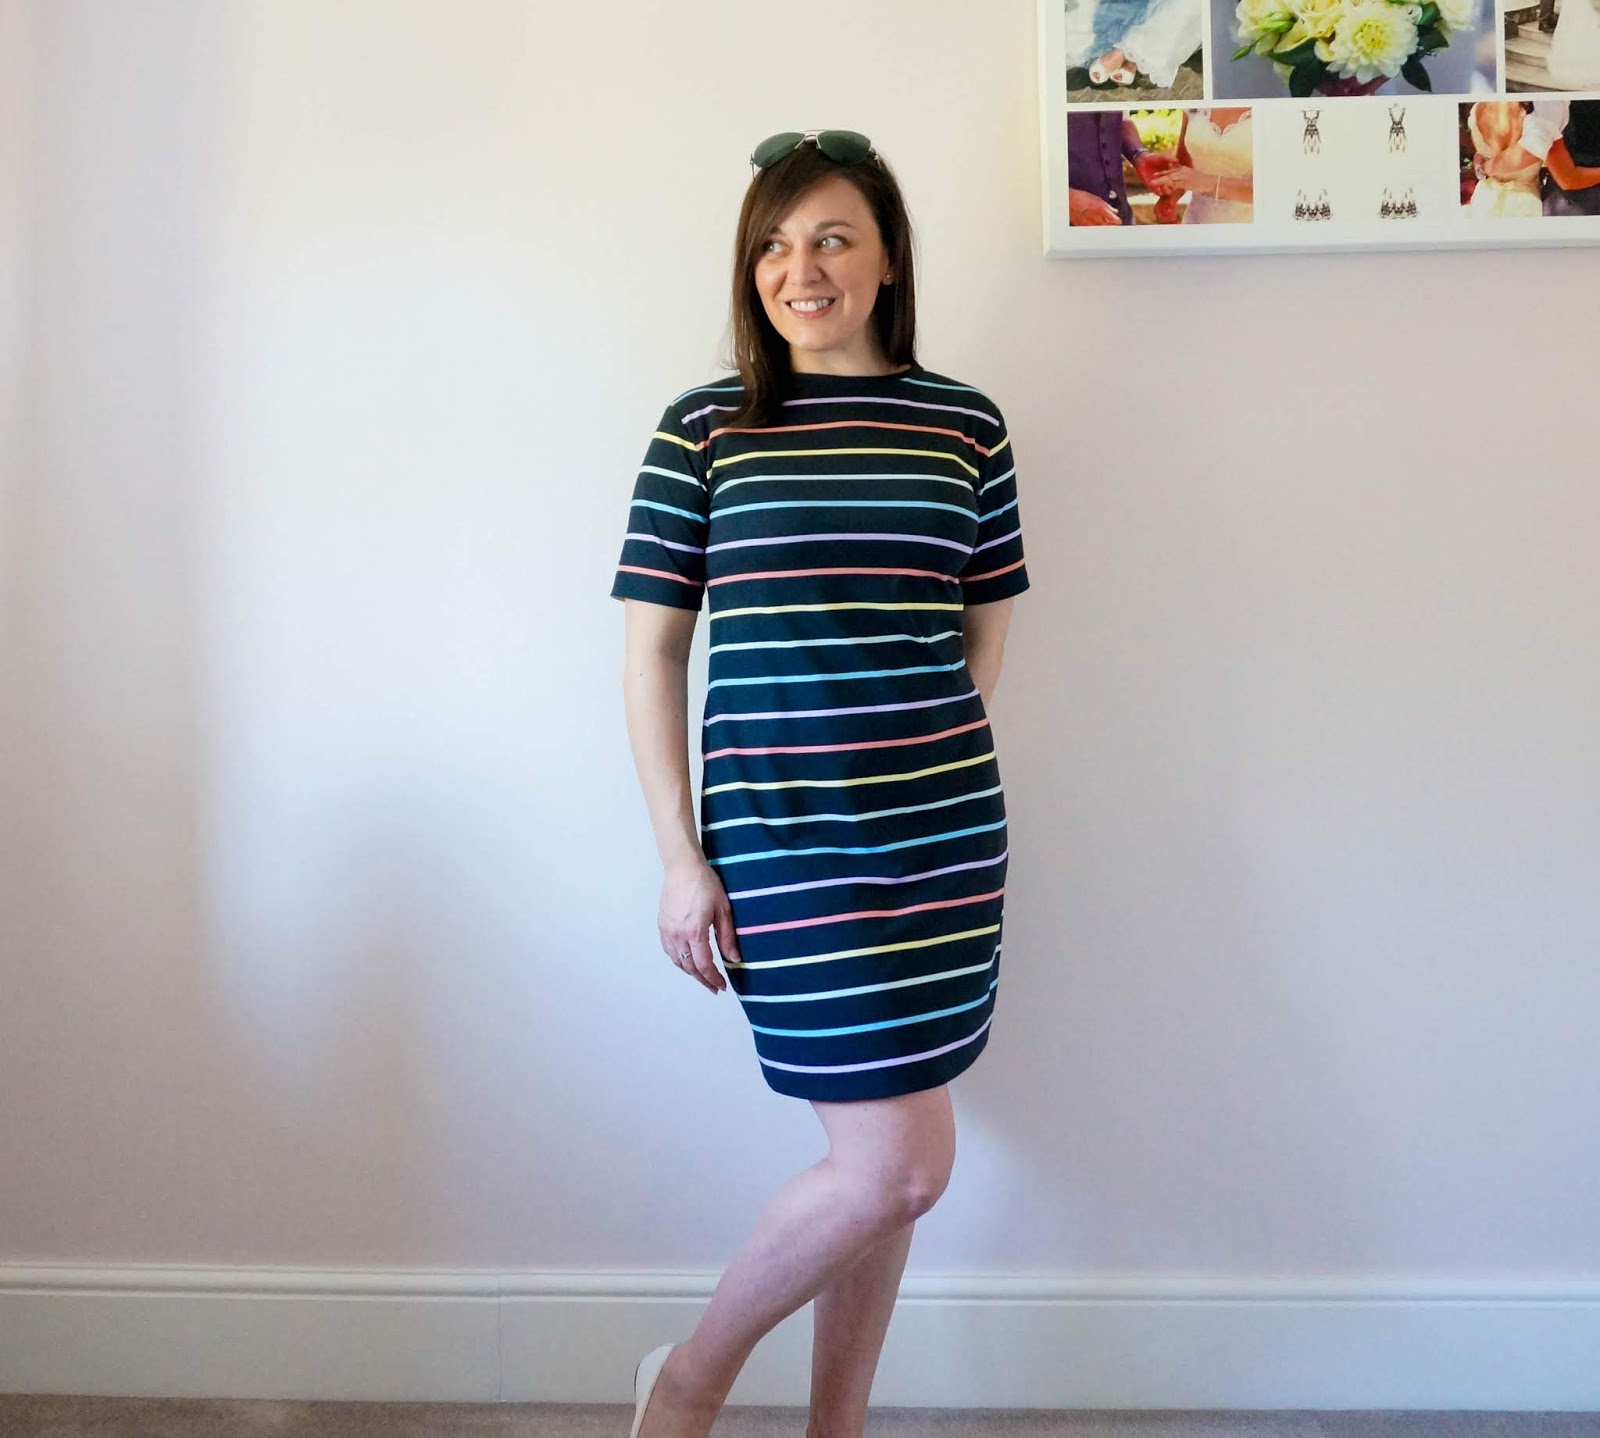 Rainbow T-Shirt dress using Sew Over It Molly dress and Seamwork Astoria patterns